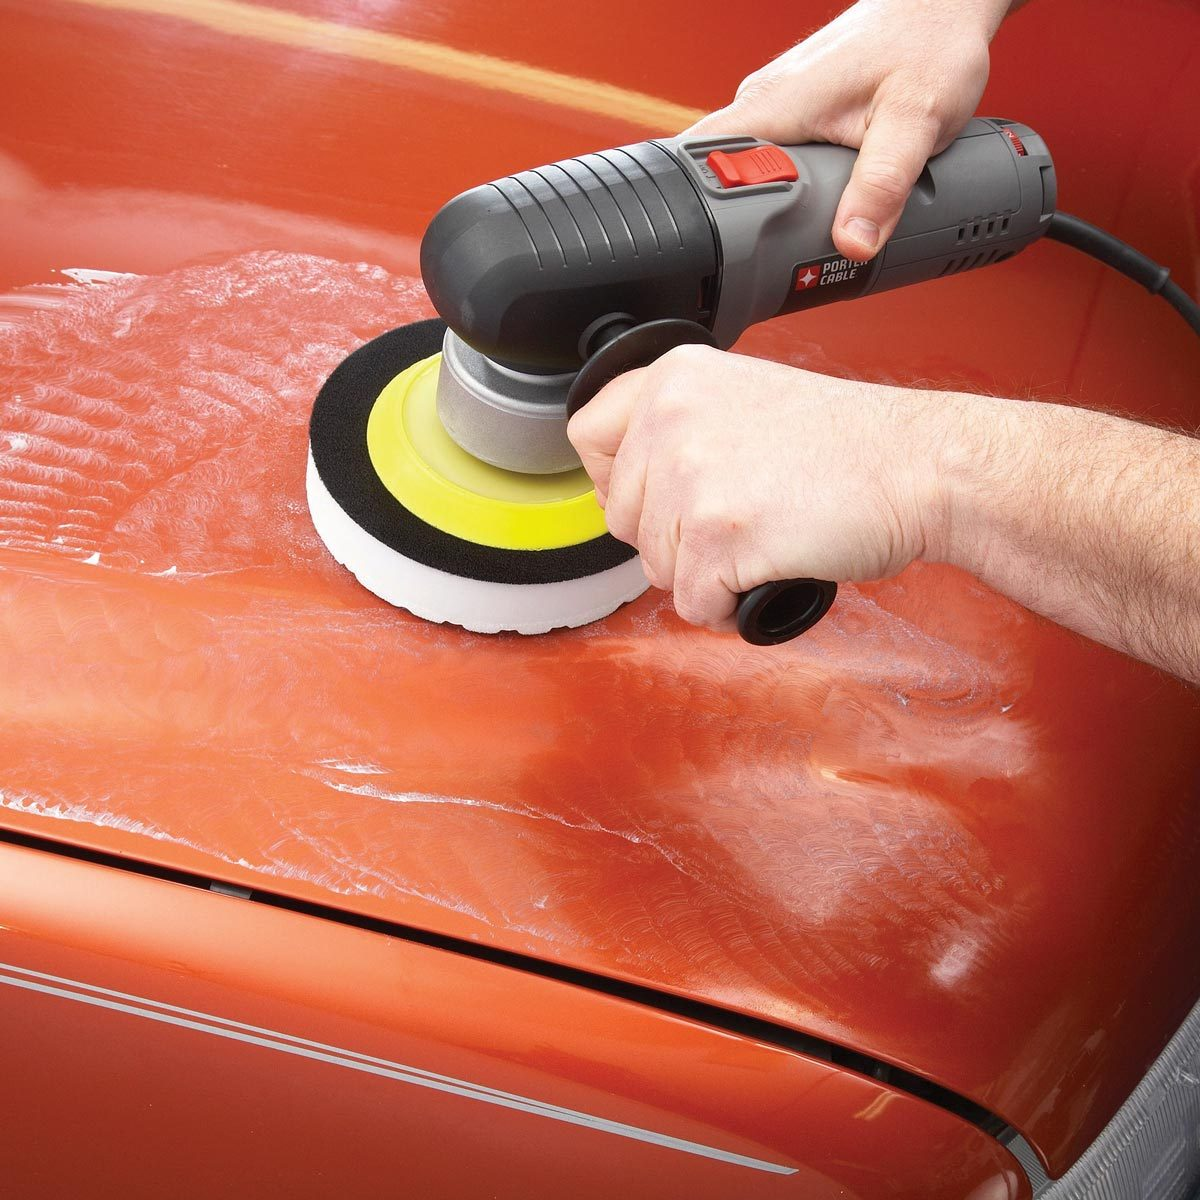 Best Way to Clean a Car: Polish the Finish